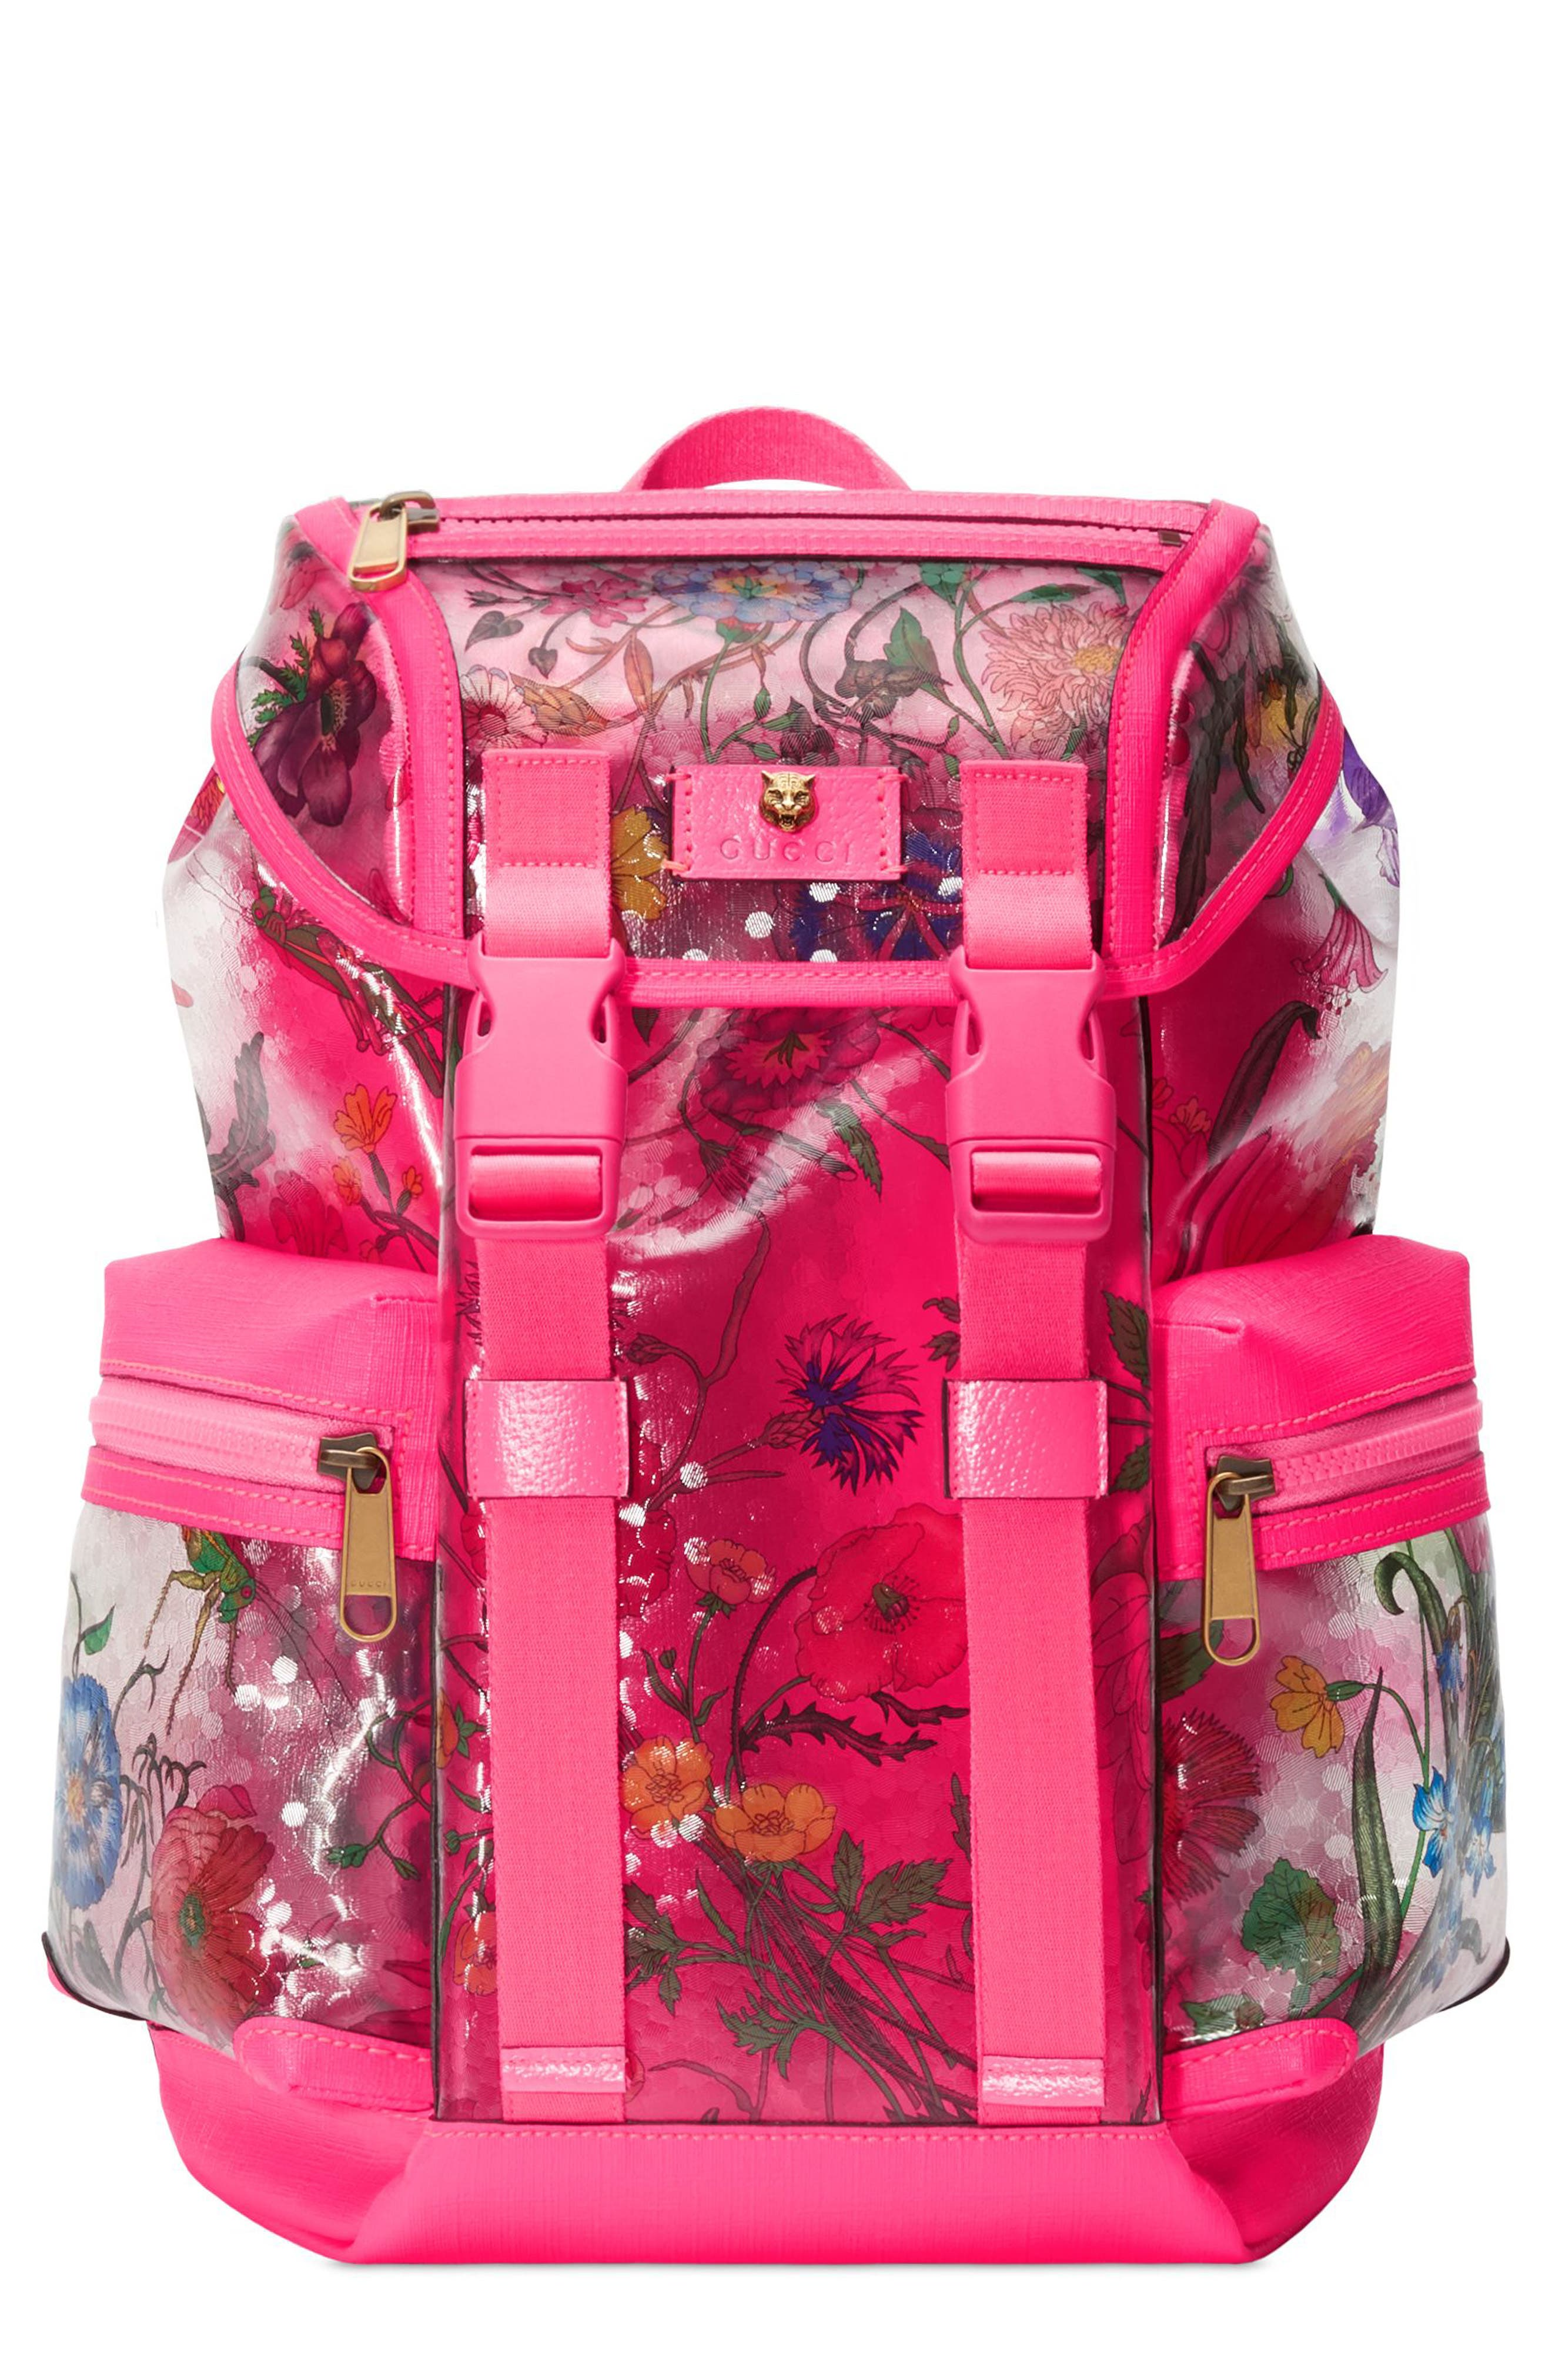 Floral Print Small Backpack,                             Main thumbnail 1, color,                             FUXIA FLOURESCENT MULTI